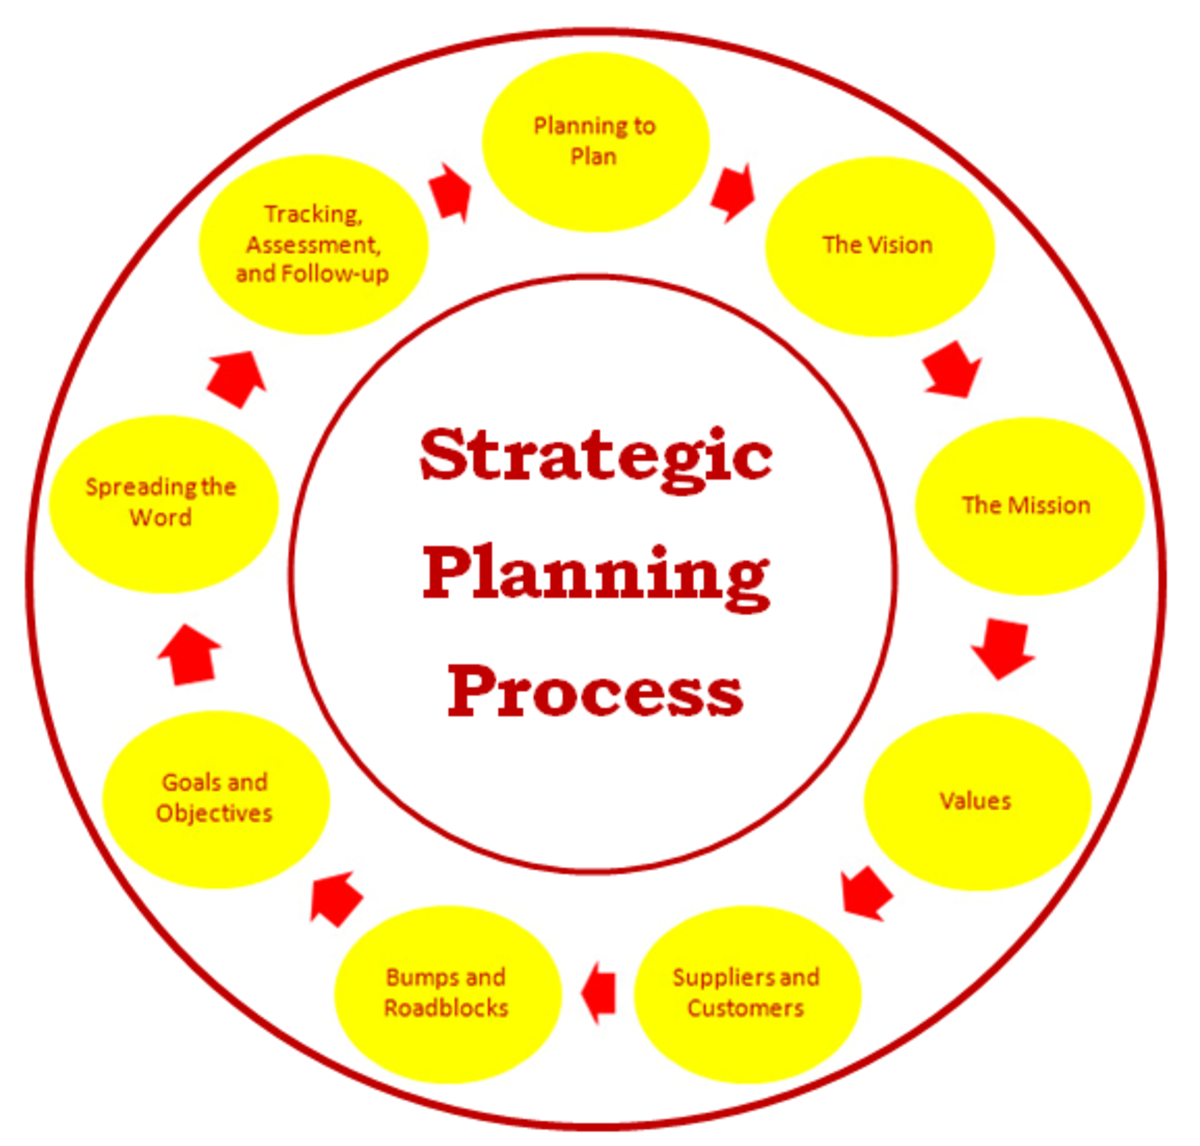 Organizational Strategic Plan- Elements And Examples | Hubpages